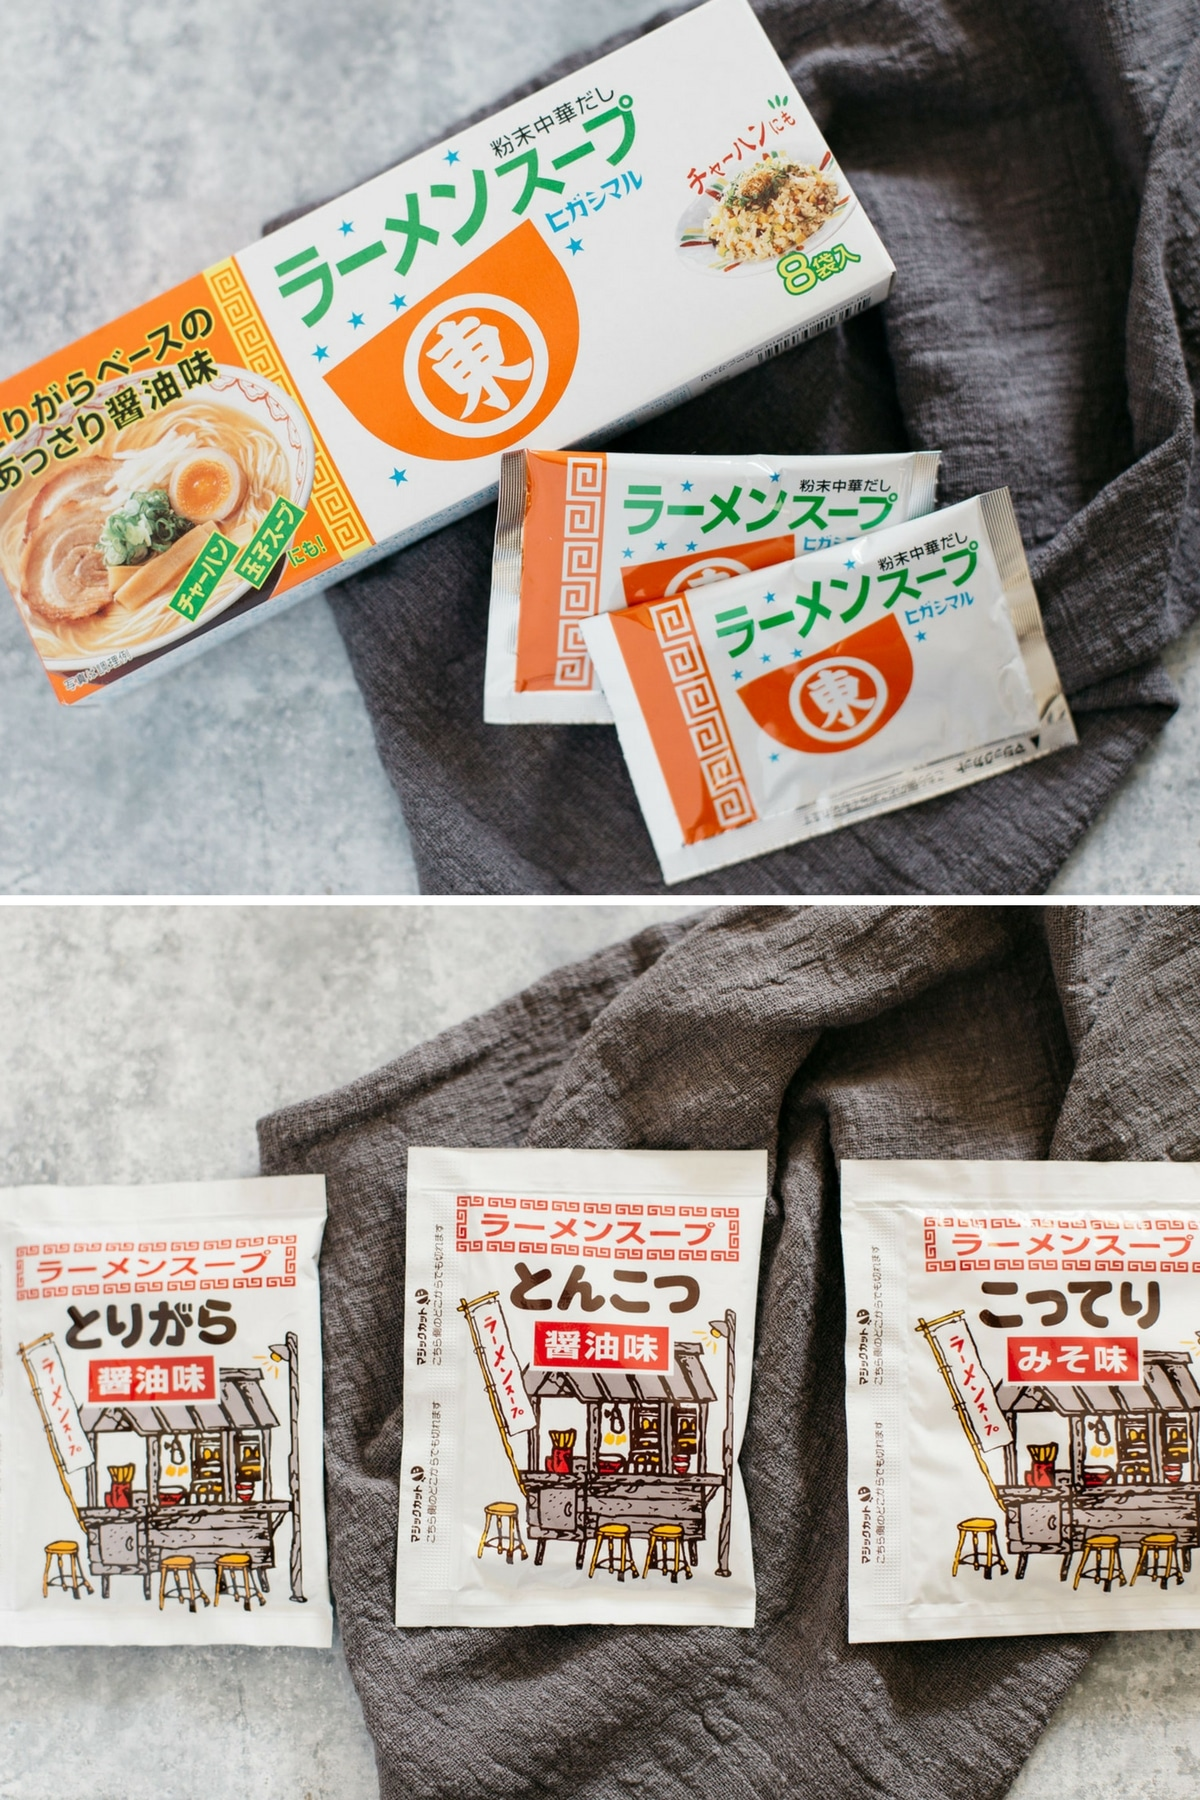 different types of ramen soup packets.